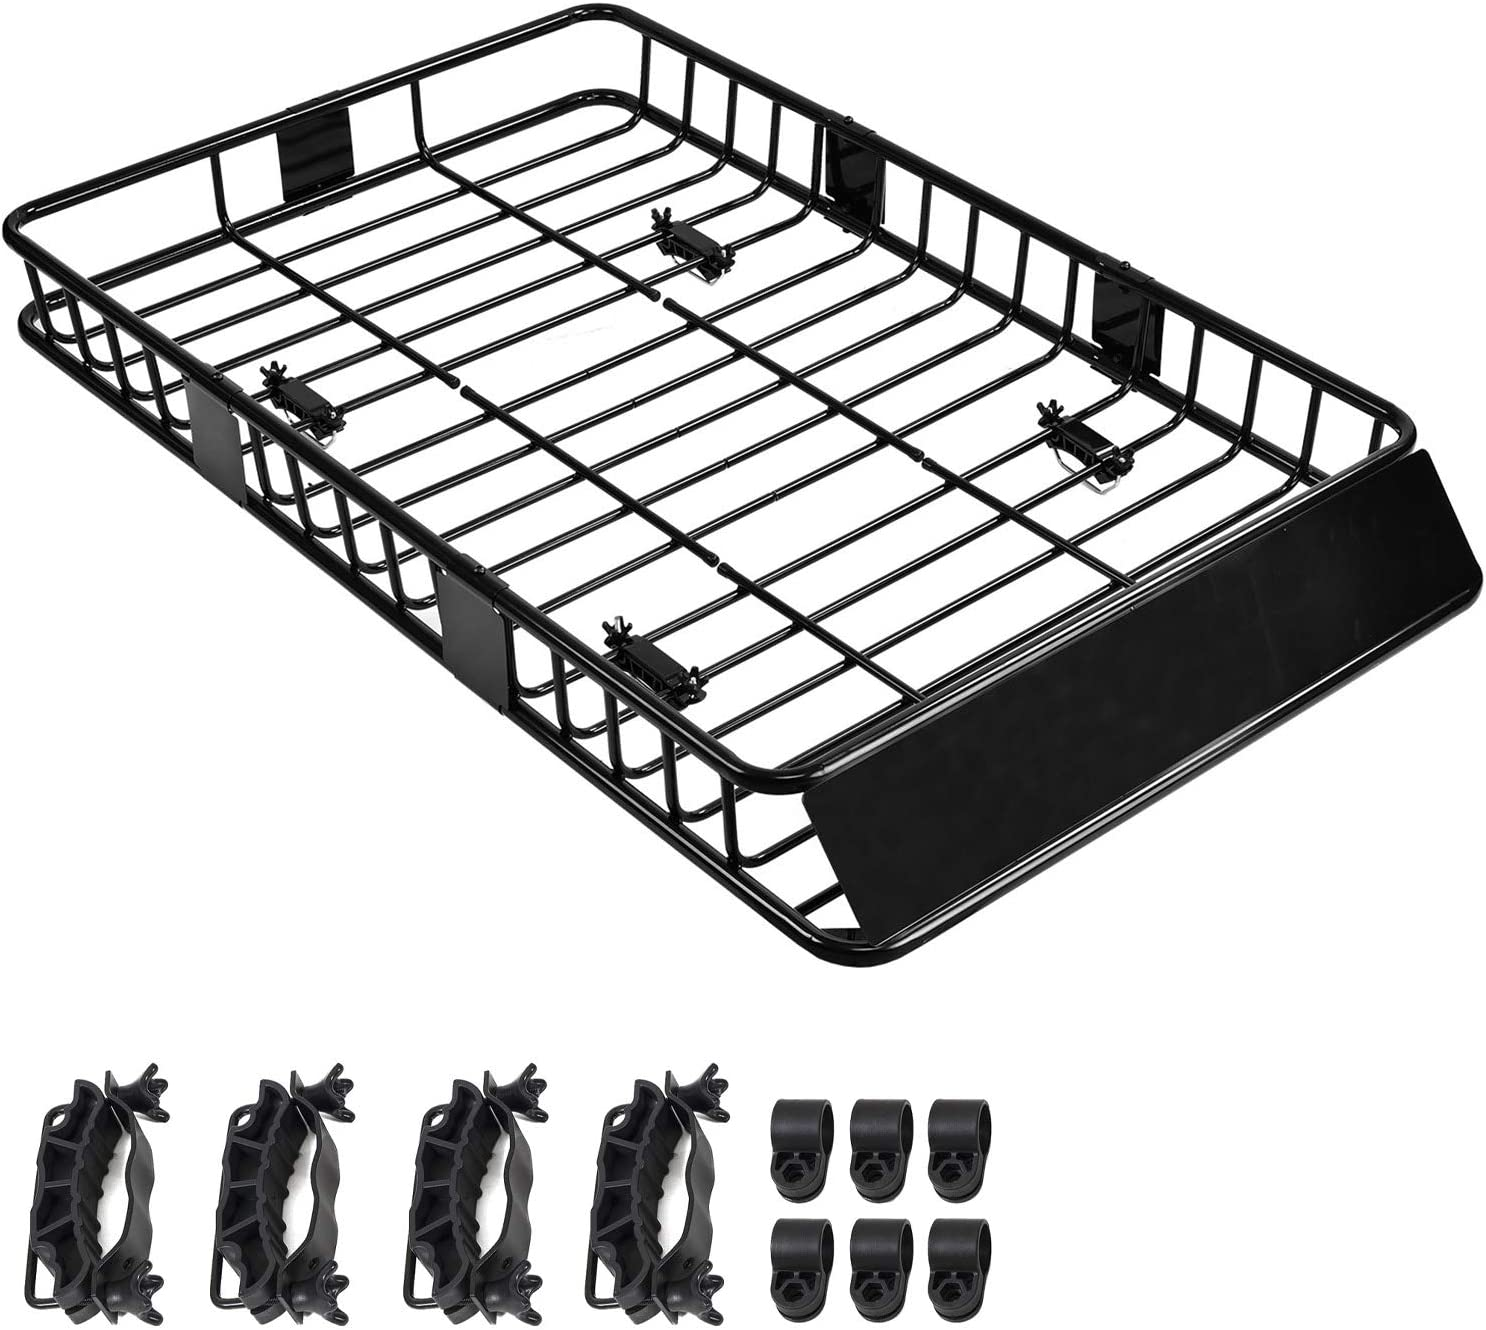 SUNCOO 64 Inch Universal Roof Rack Cargo Basket Extension with 250 Lbs Capacity Car Top Luggage Holder Wind Fairing Cargo Carrier